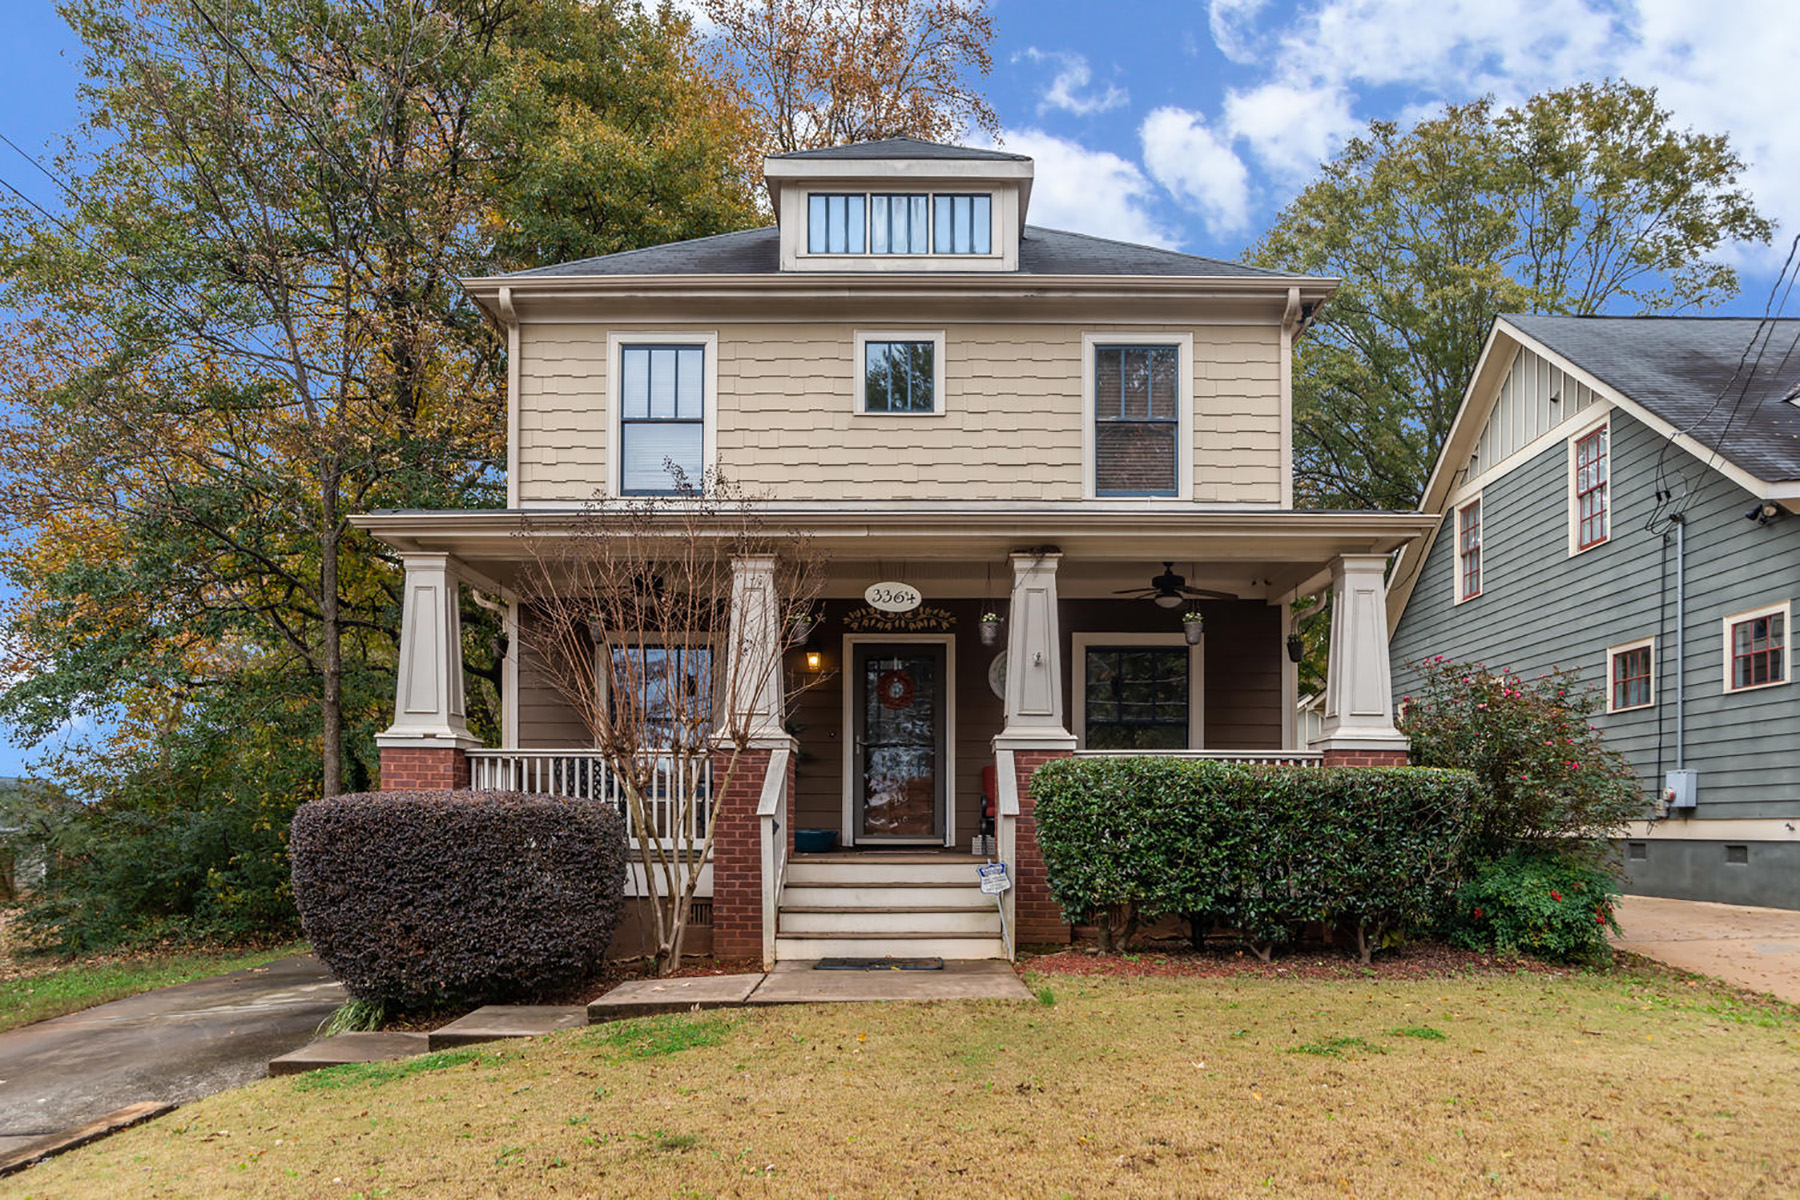 Egan Park Craftsman in Close Proximity to Woodward Academy and Downtown 3364 Harrison Rd Atlanta, Georgia 30344 Hoa Kỳ